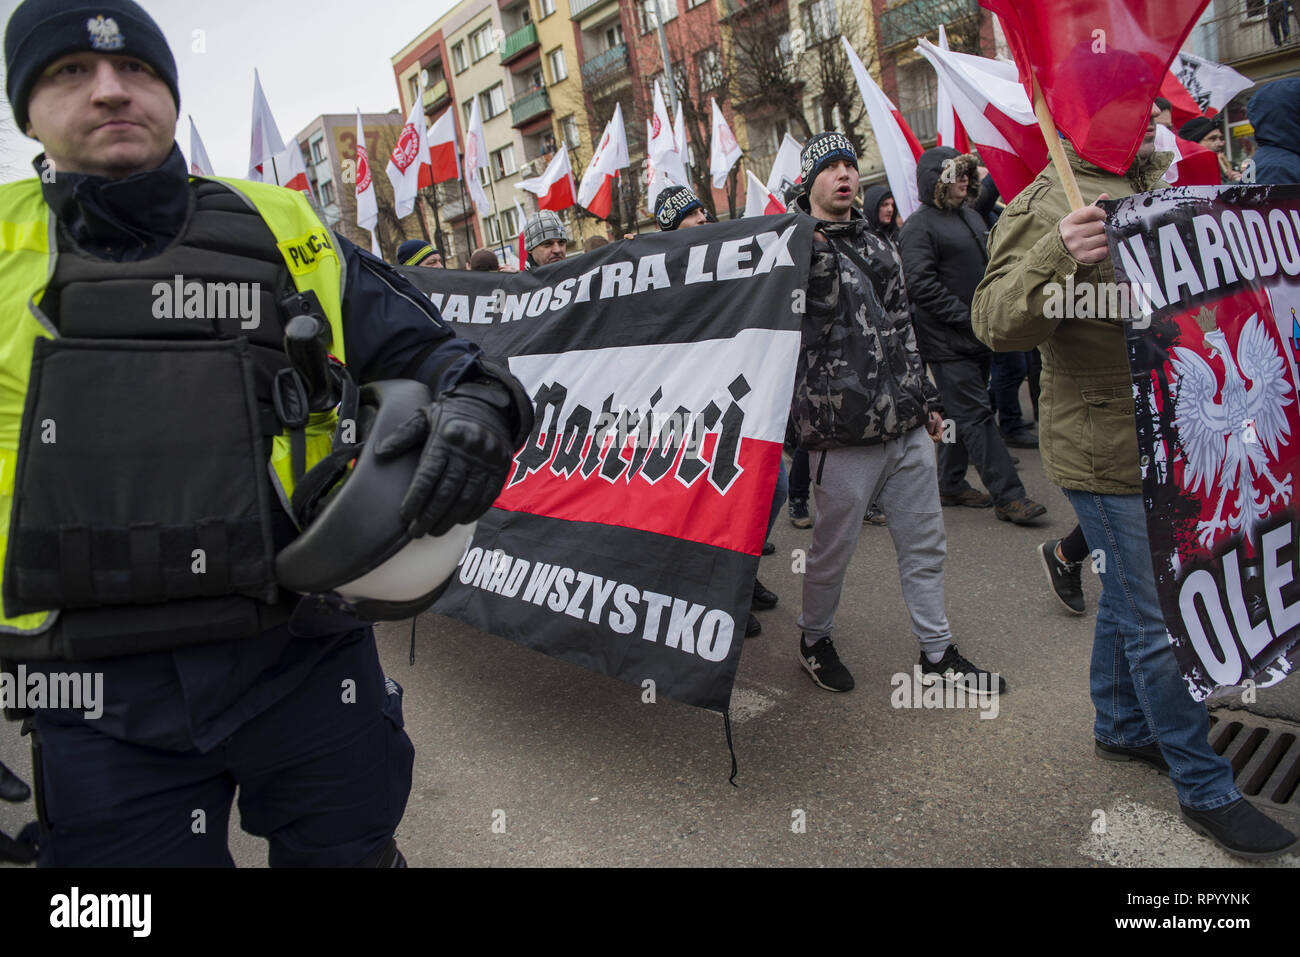 Hajnowka, Poldlaskie, Poland. 23rd Feb, 2019. Polish nationalists seen marching with patriotic banners to commemorate the Cursed Soldiers.Polish nationalists organized a commemorative march of the 'Cursed Soldiers'' in the city of Hajnowka next to the Belarusian border. The Cursed Soldiers also known as the Doomed Soldiers were anti-communist resistant fighters after WWII, however they were also famous of committing crimes against civilians, mostly ethnic Belarusians. Credit: Attila Husejnow/SOPA Images/ZUMA Wire/Alamy Live News - Stock Image